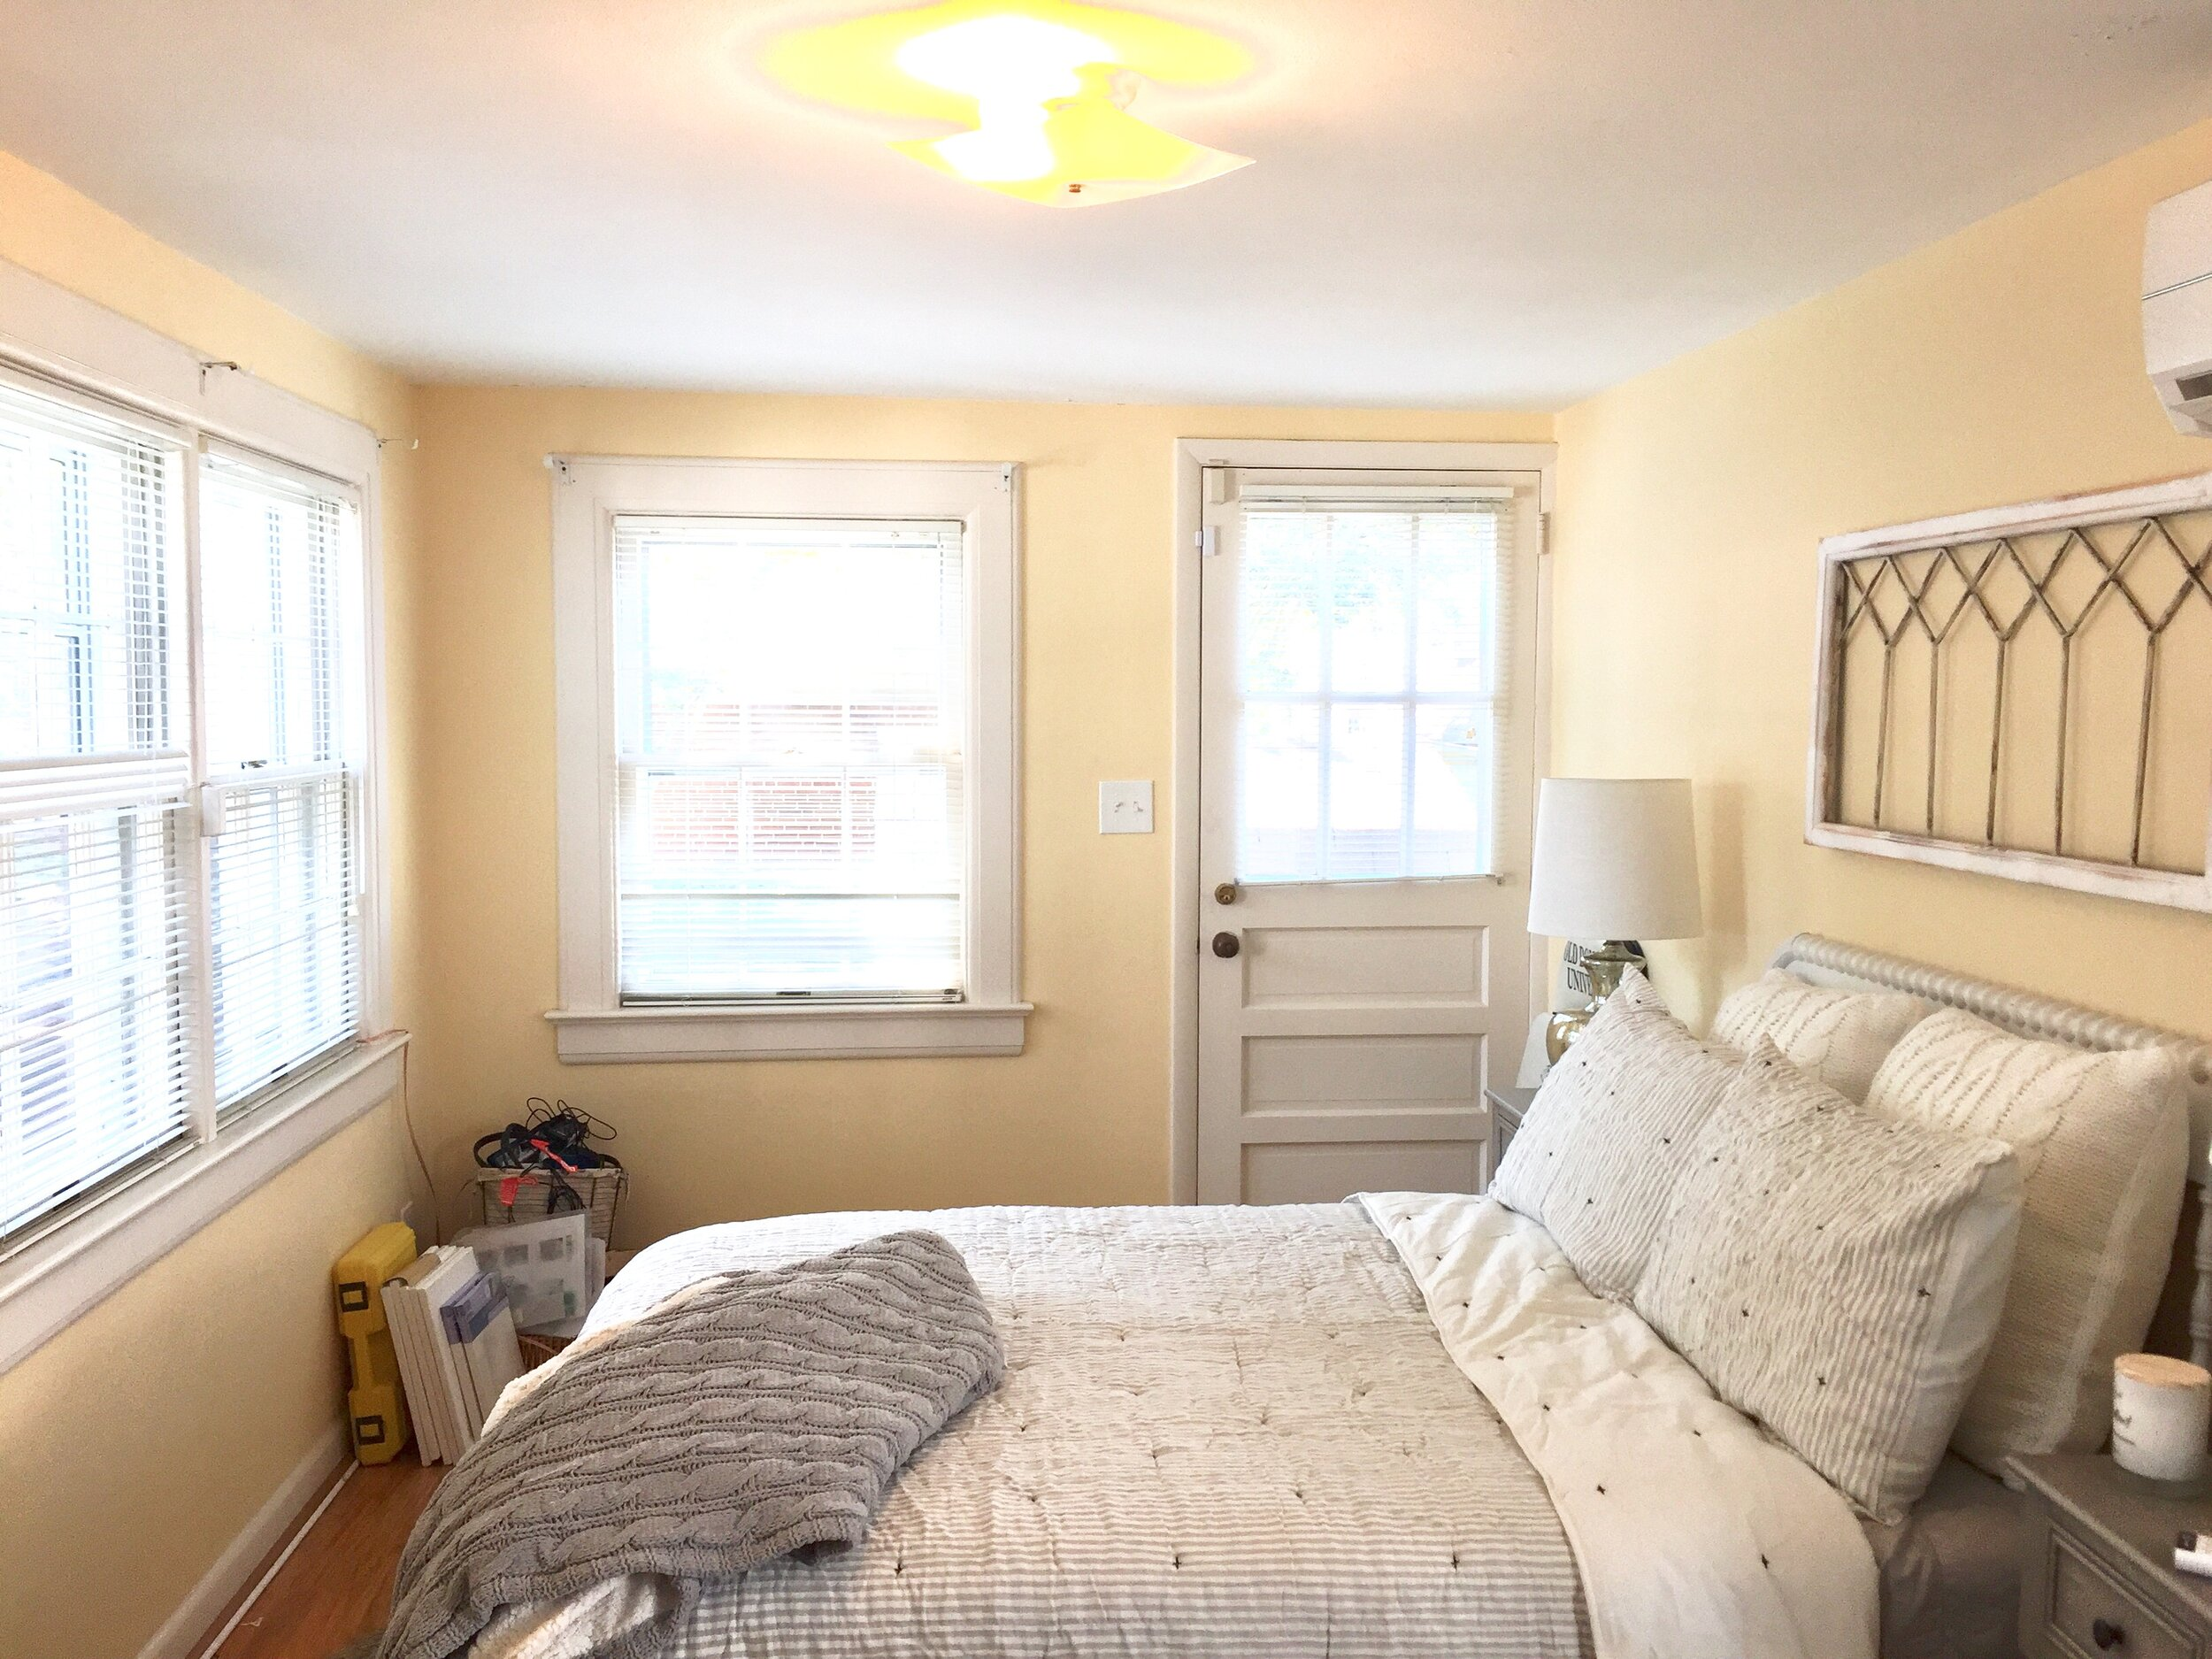 The Epps' Guest Room